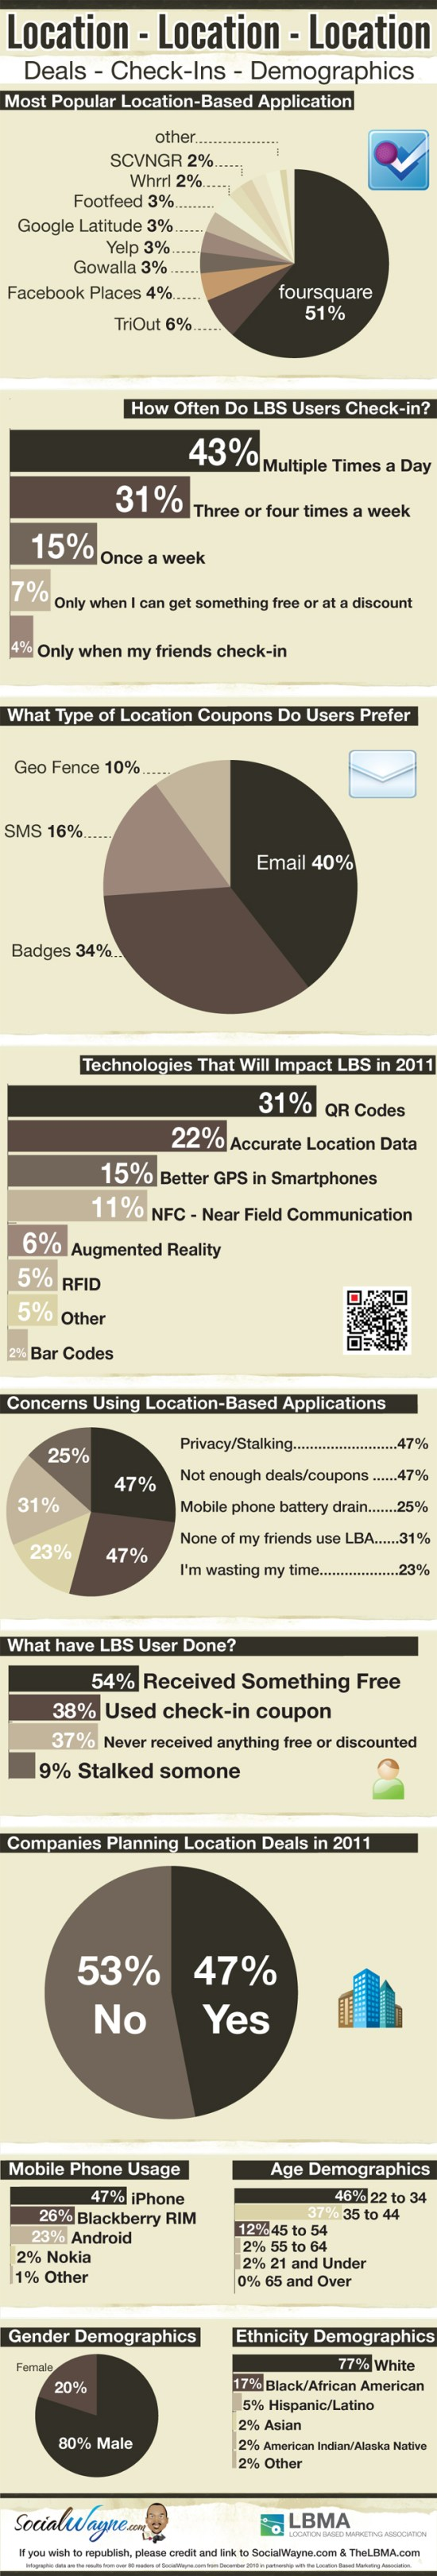 infographic - location- deals-check-ins-demographics